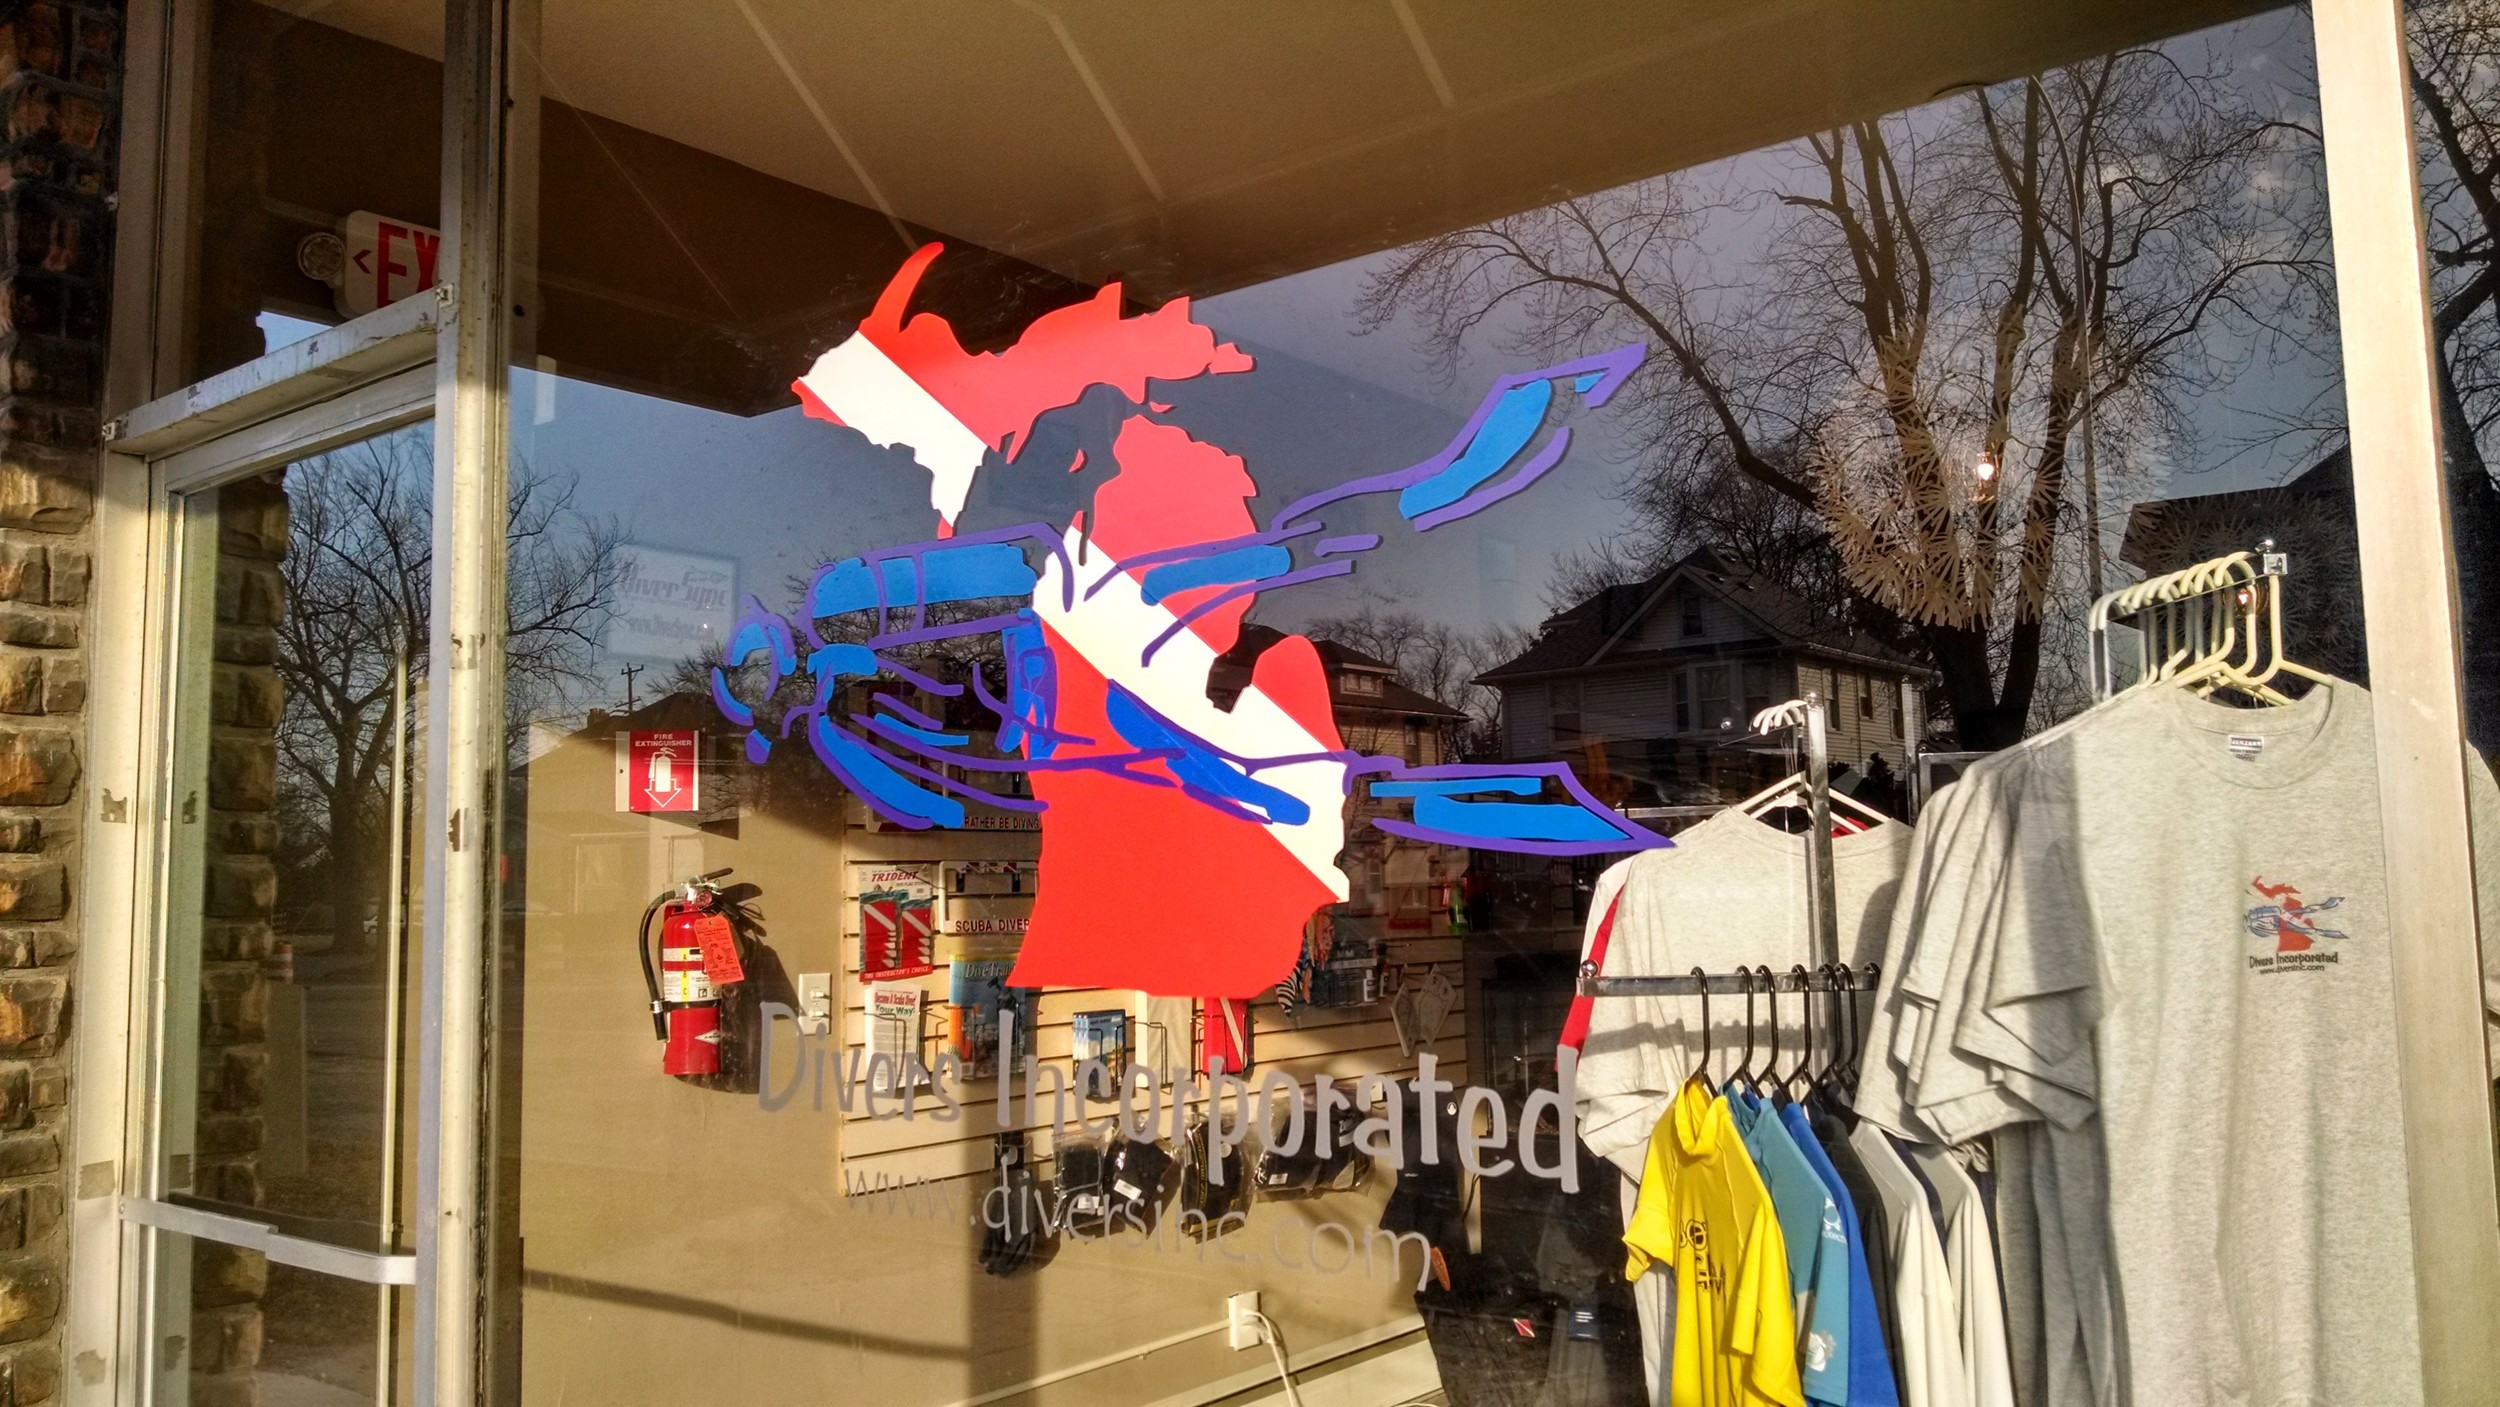 New store front for Diver's Incorporated - Monroe